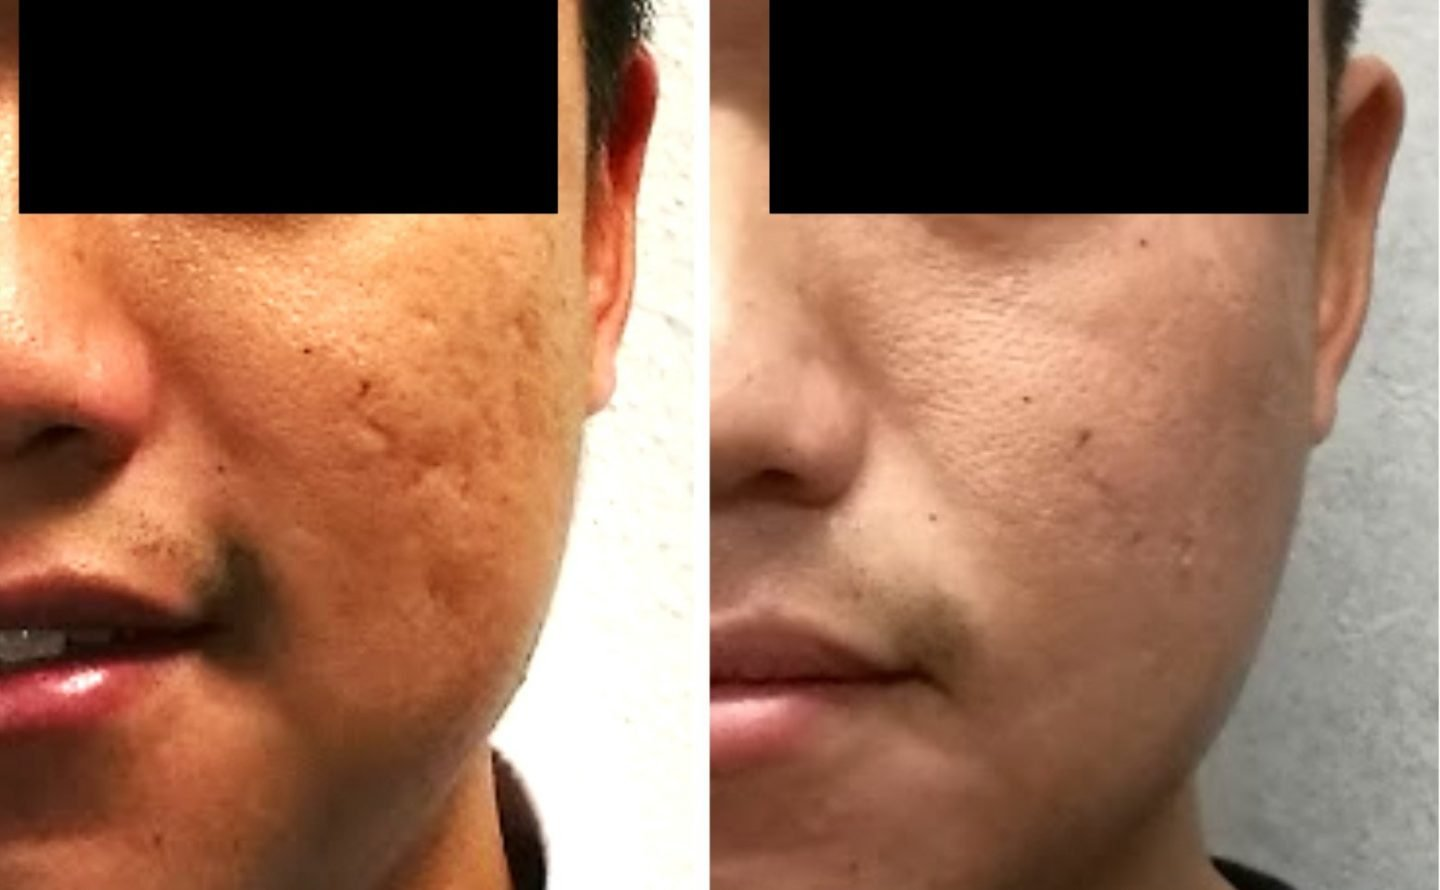 Before and After Acne Scar Removal in Singapore by Dr Chua Cheng yu